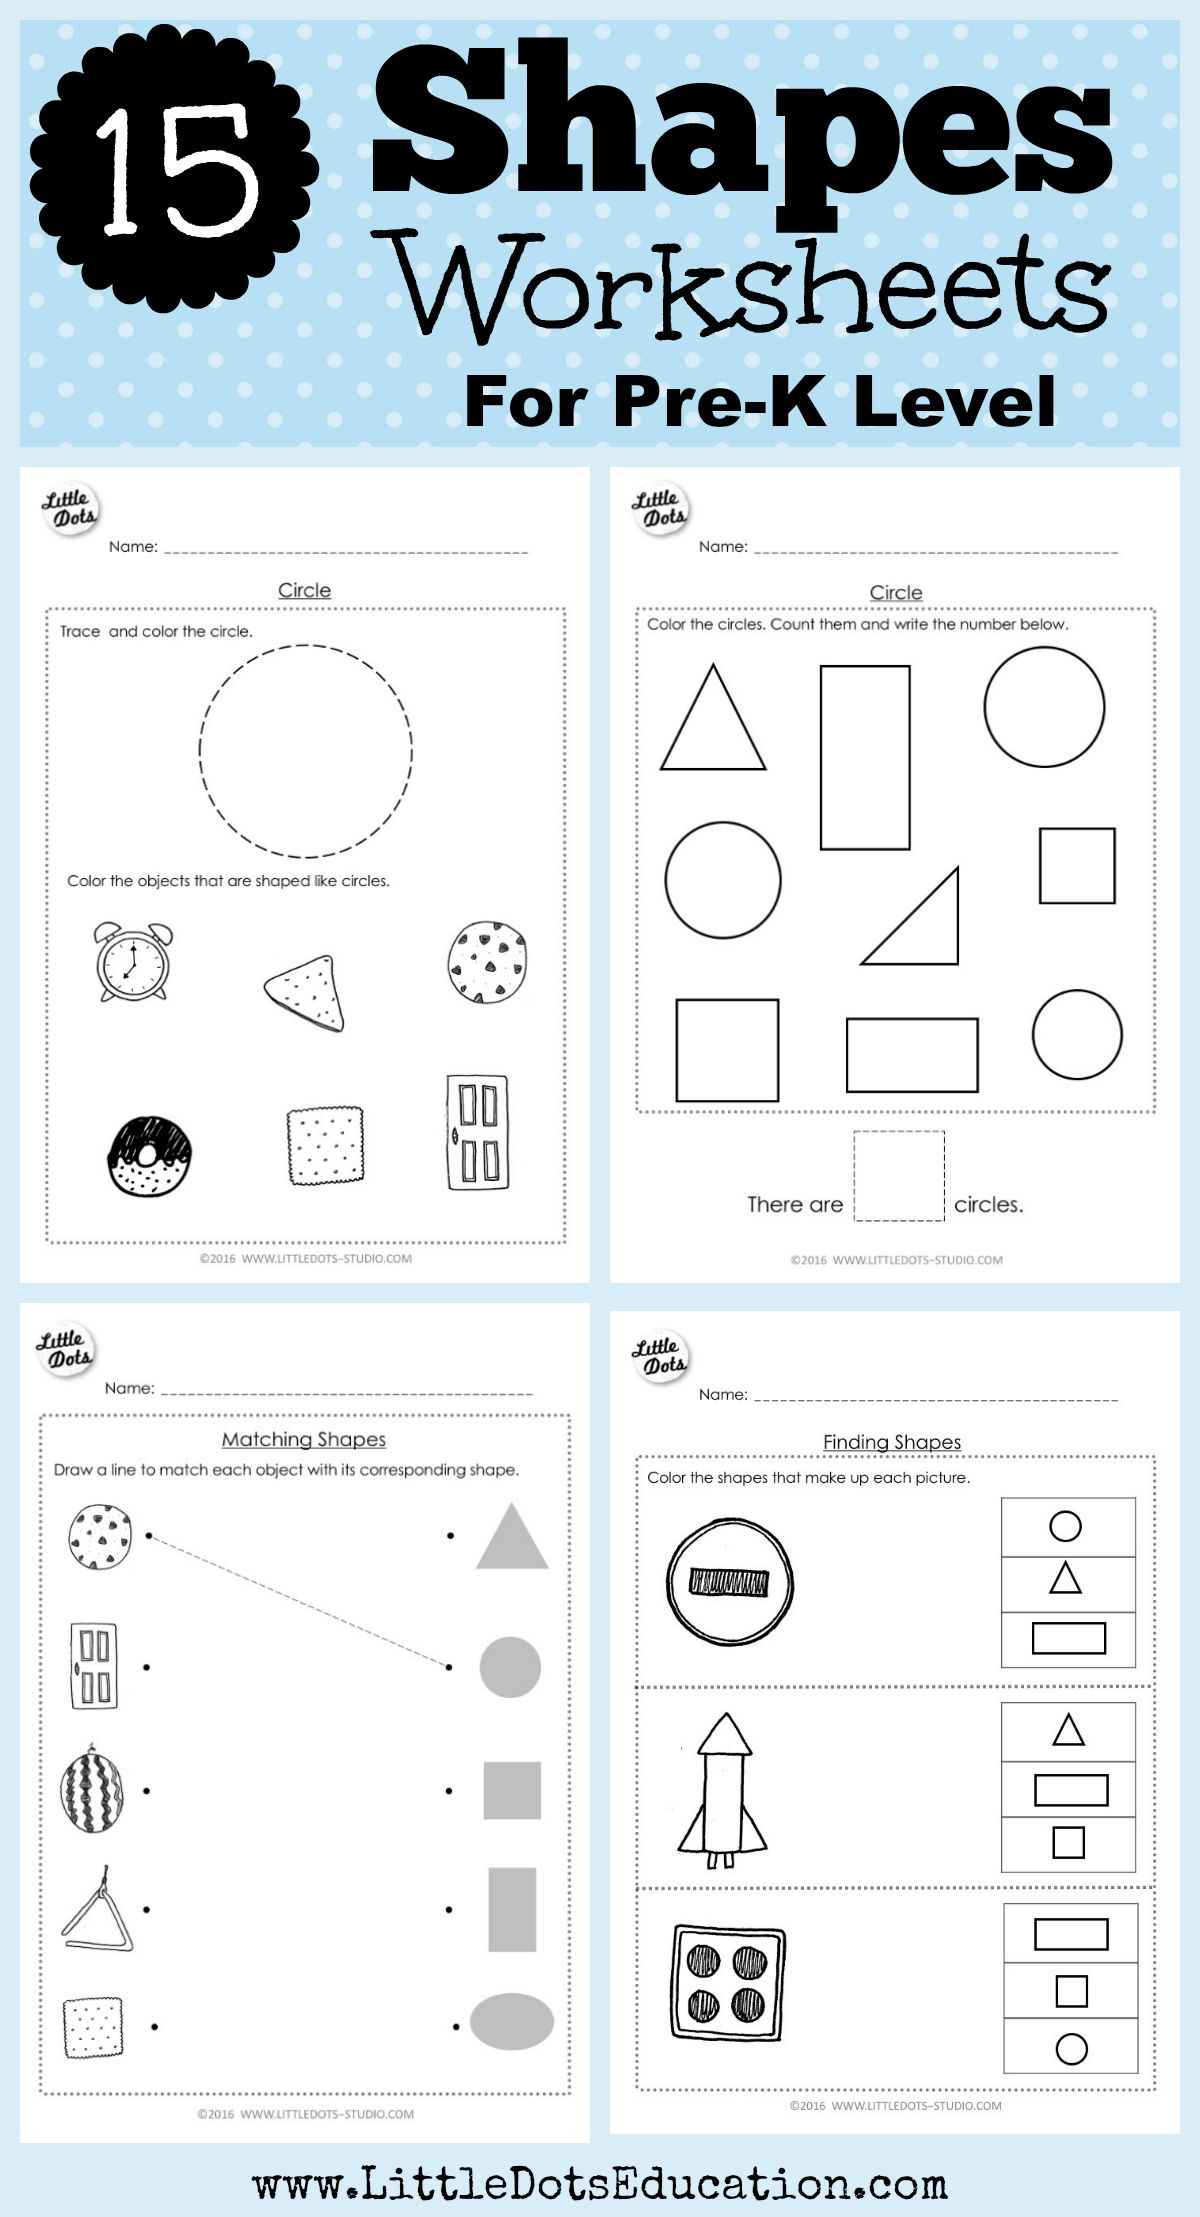 Download Shapes Worksheets For Pre K Or Preschool Class On Circle Square Triangle Rectangle